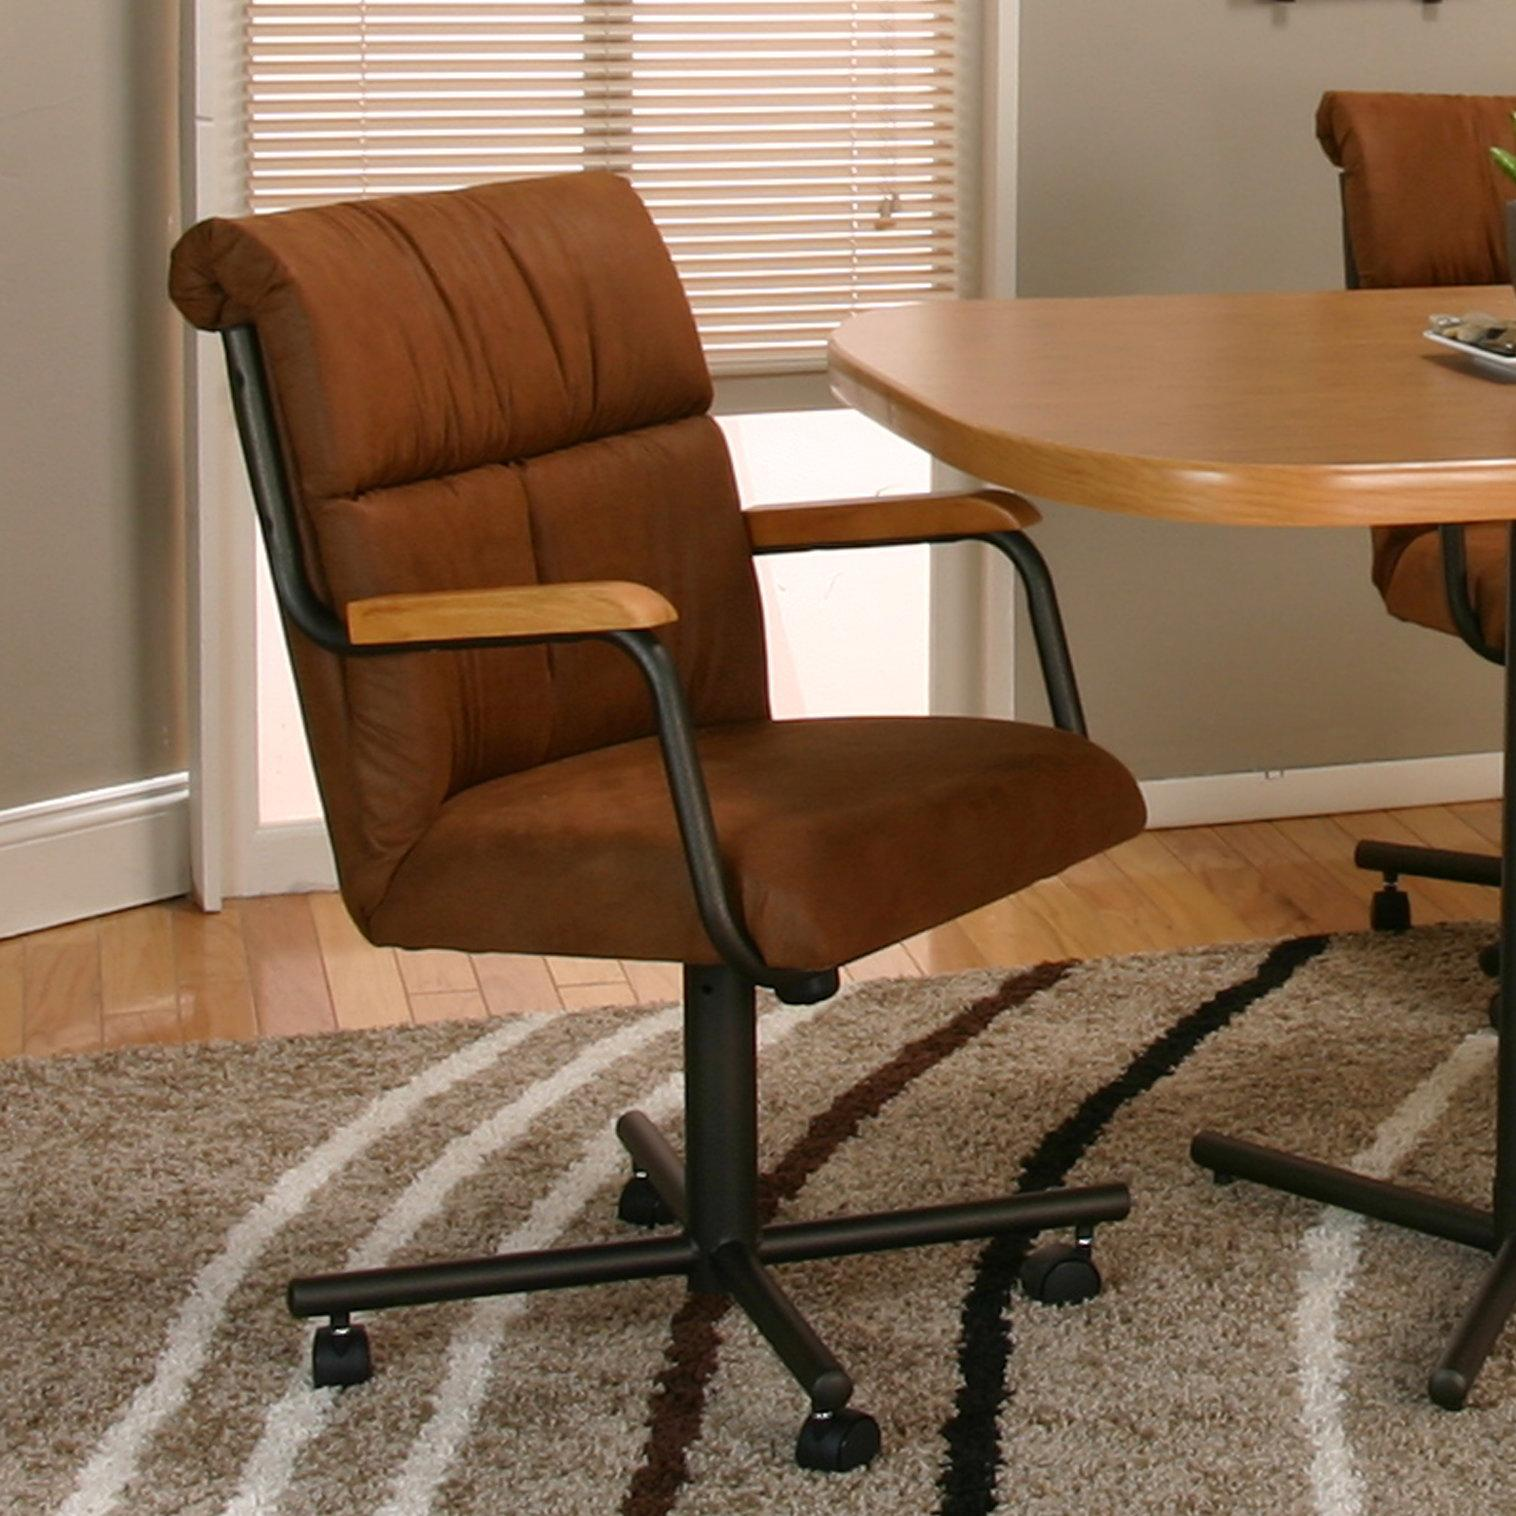 Dining Chairs With Casters Cramco Inc Landon Dining Arm Chair With Casters Value